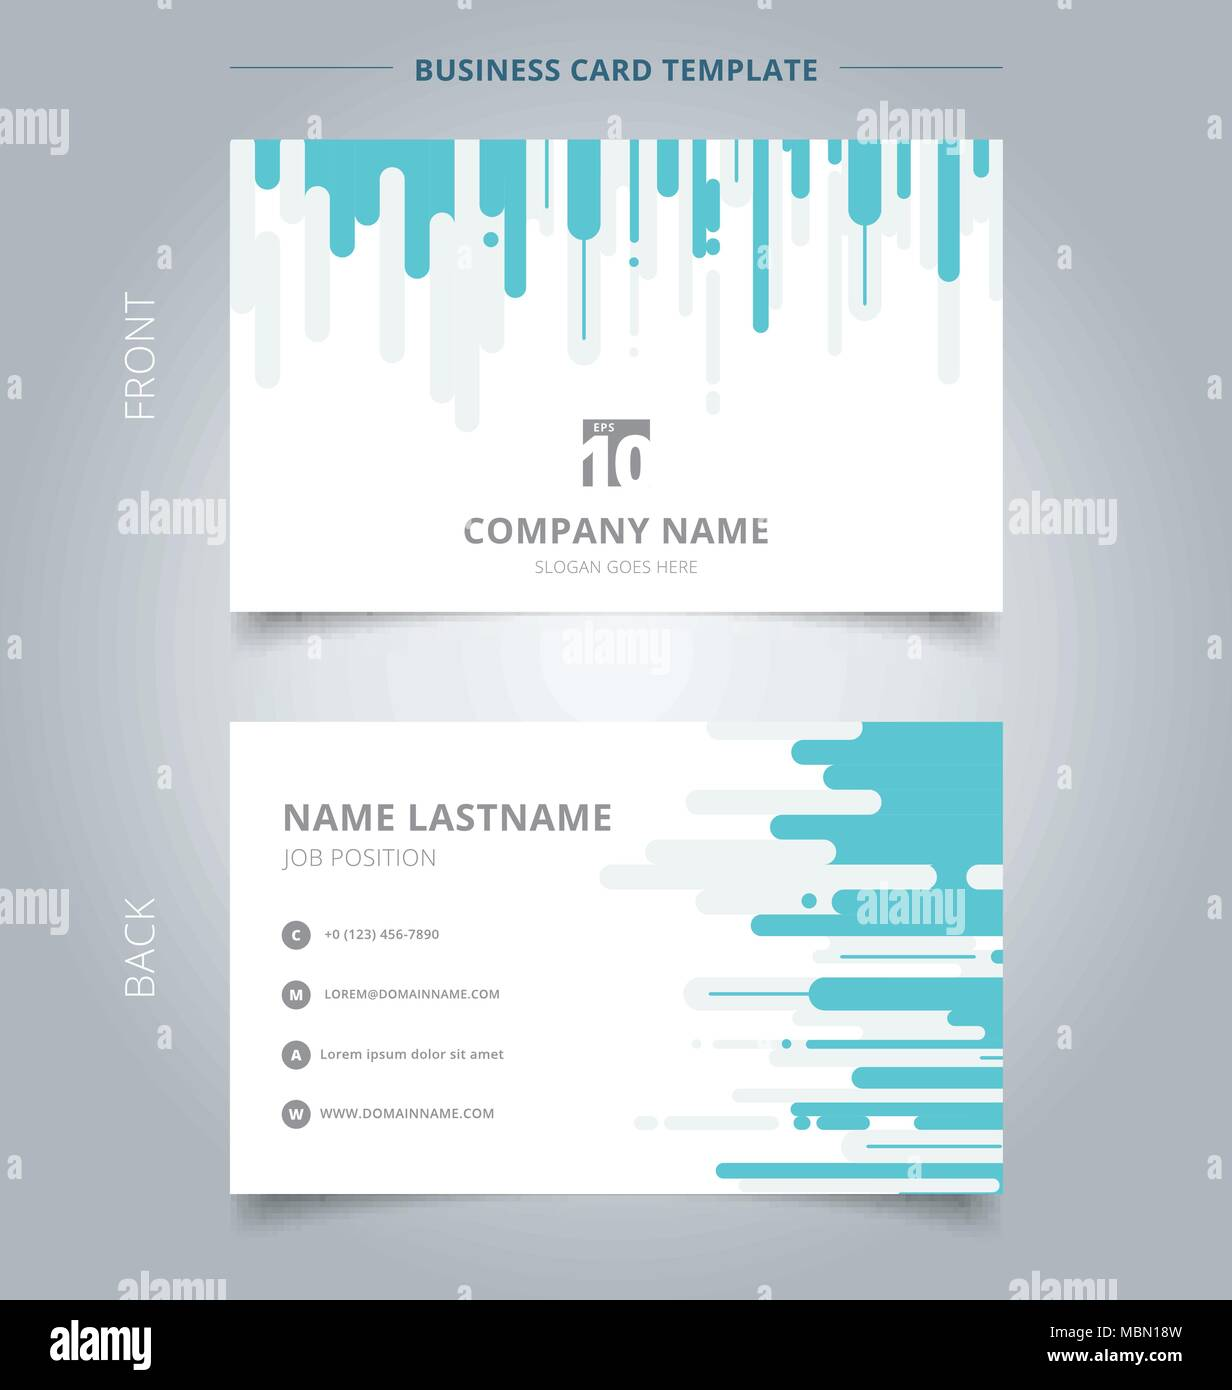 creative business card and name card template blue and gray rounded